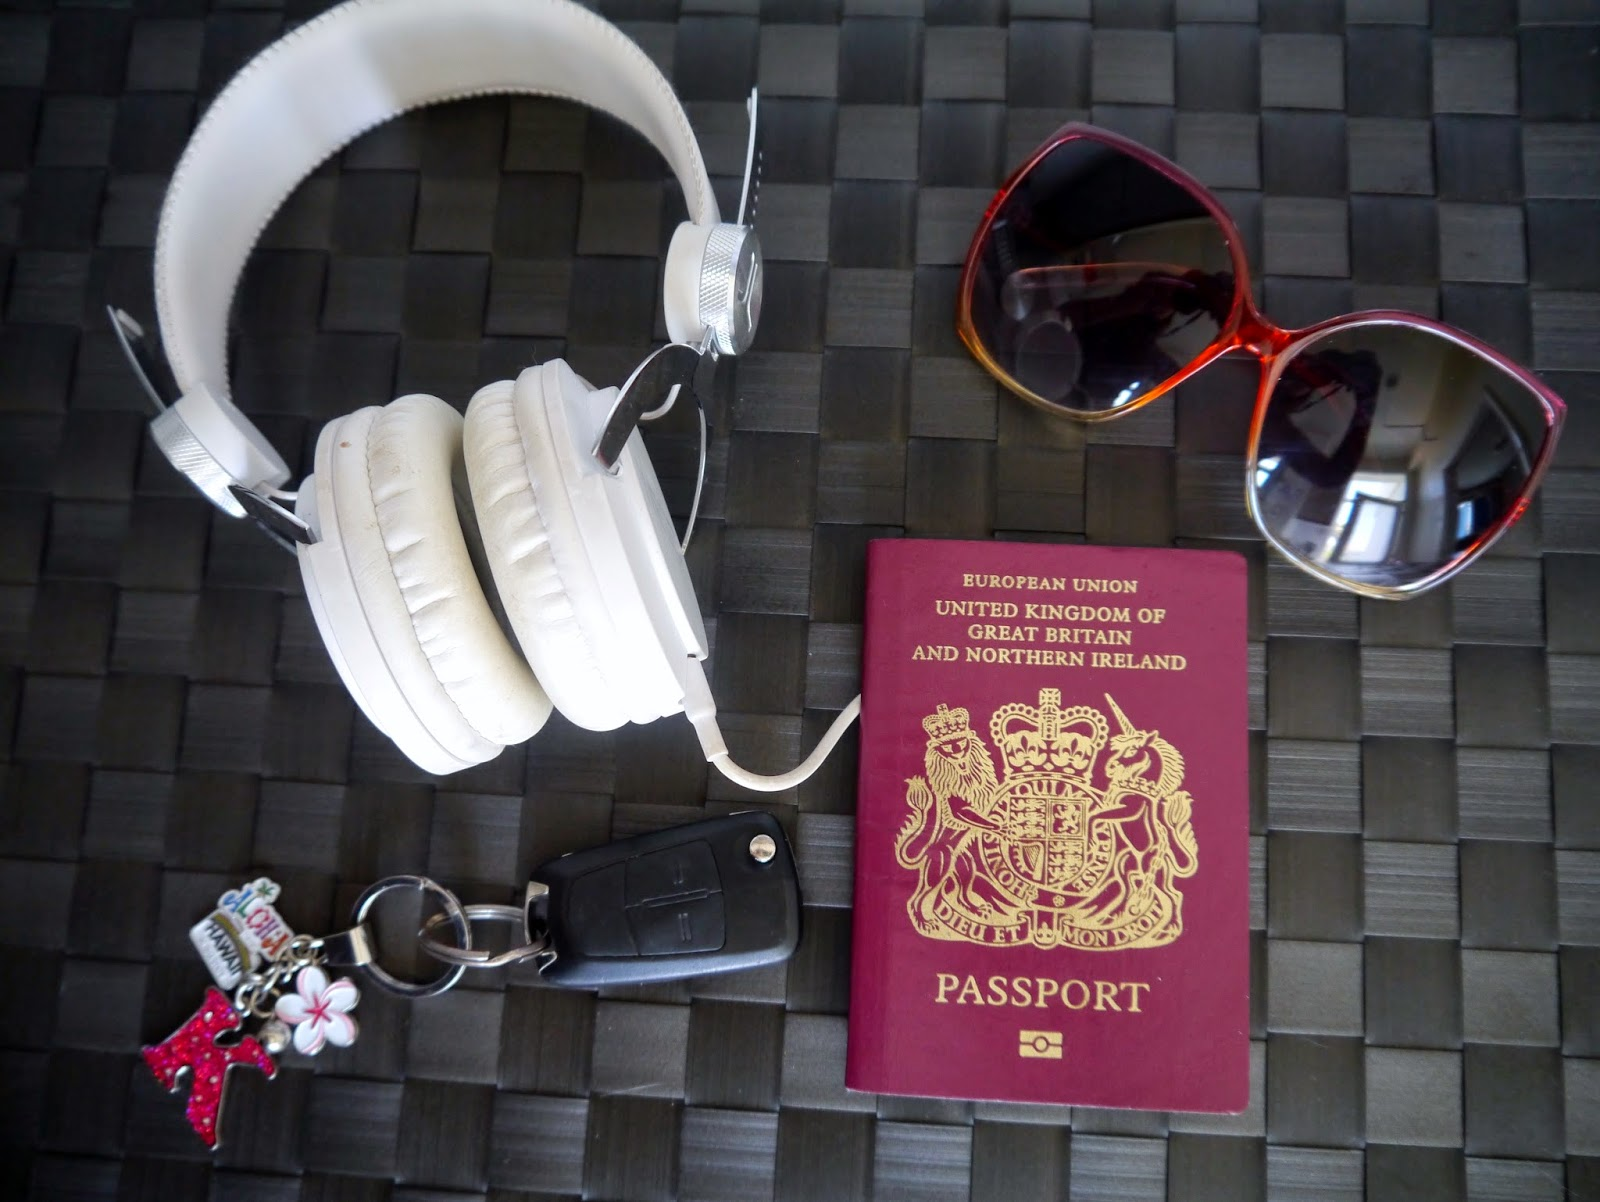 UK passport, keys and WESC headphones